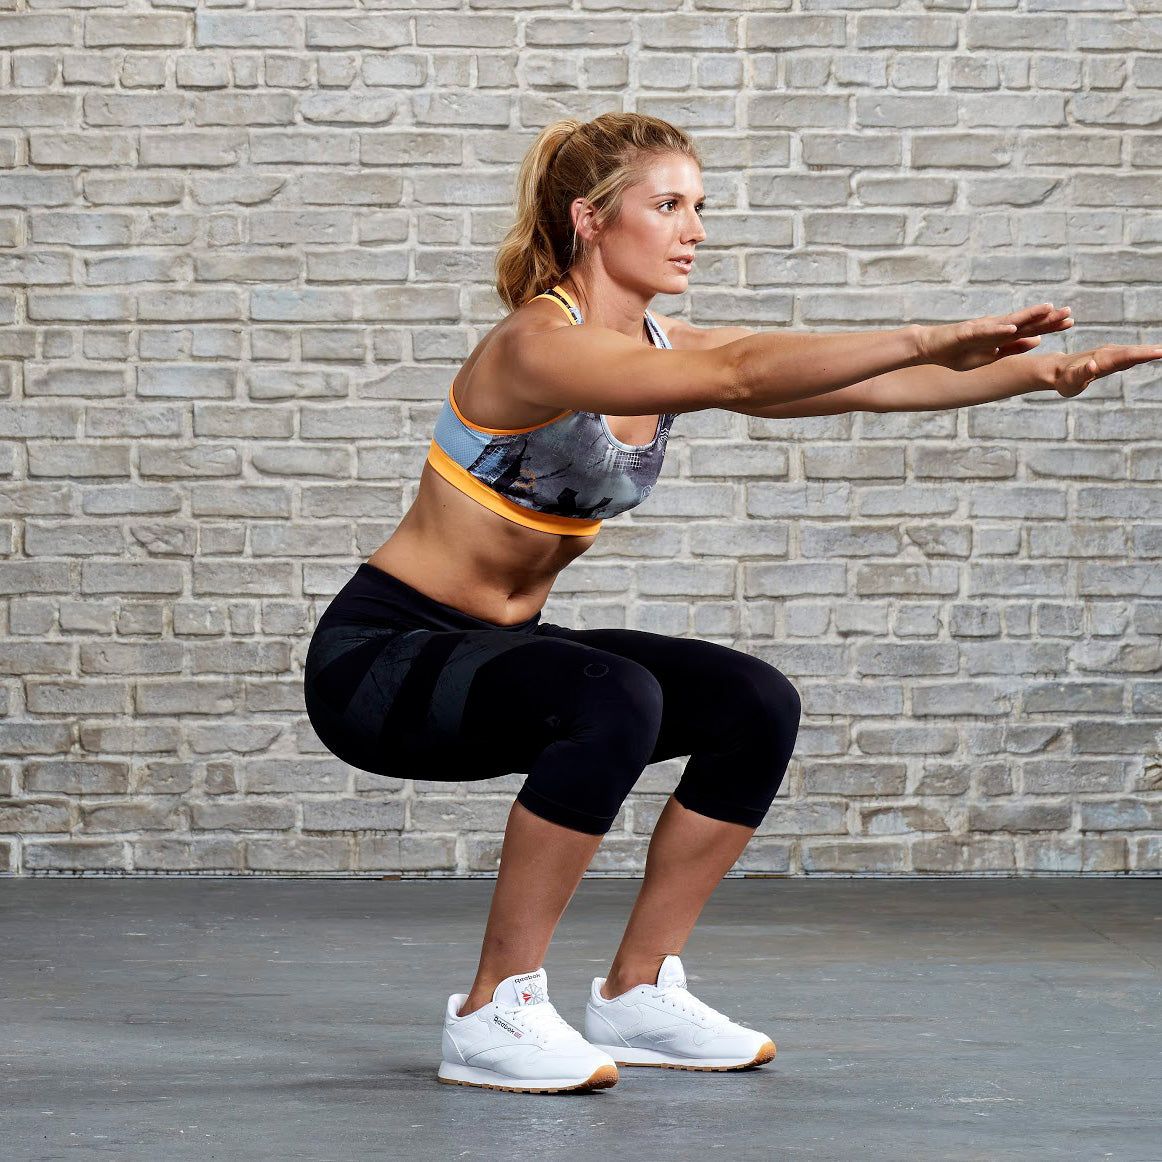 10 Booty Exercises To Fire Up Your Glutes